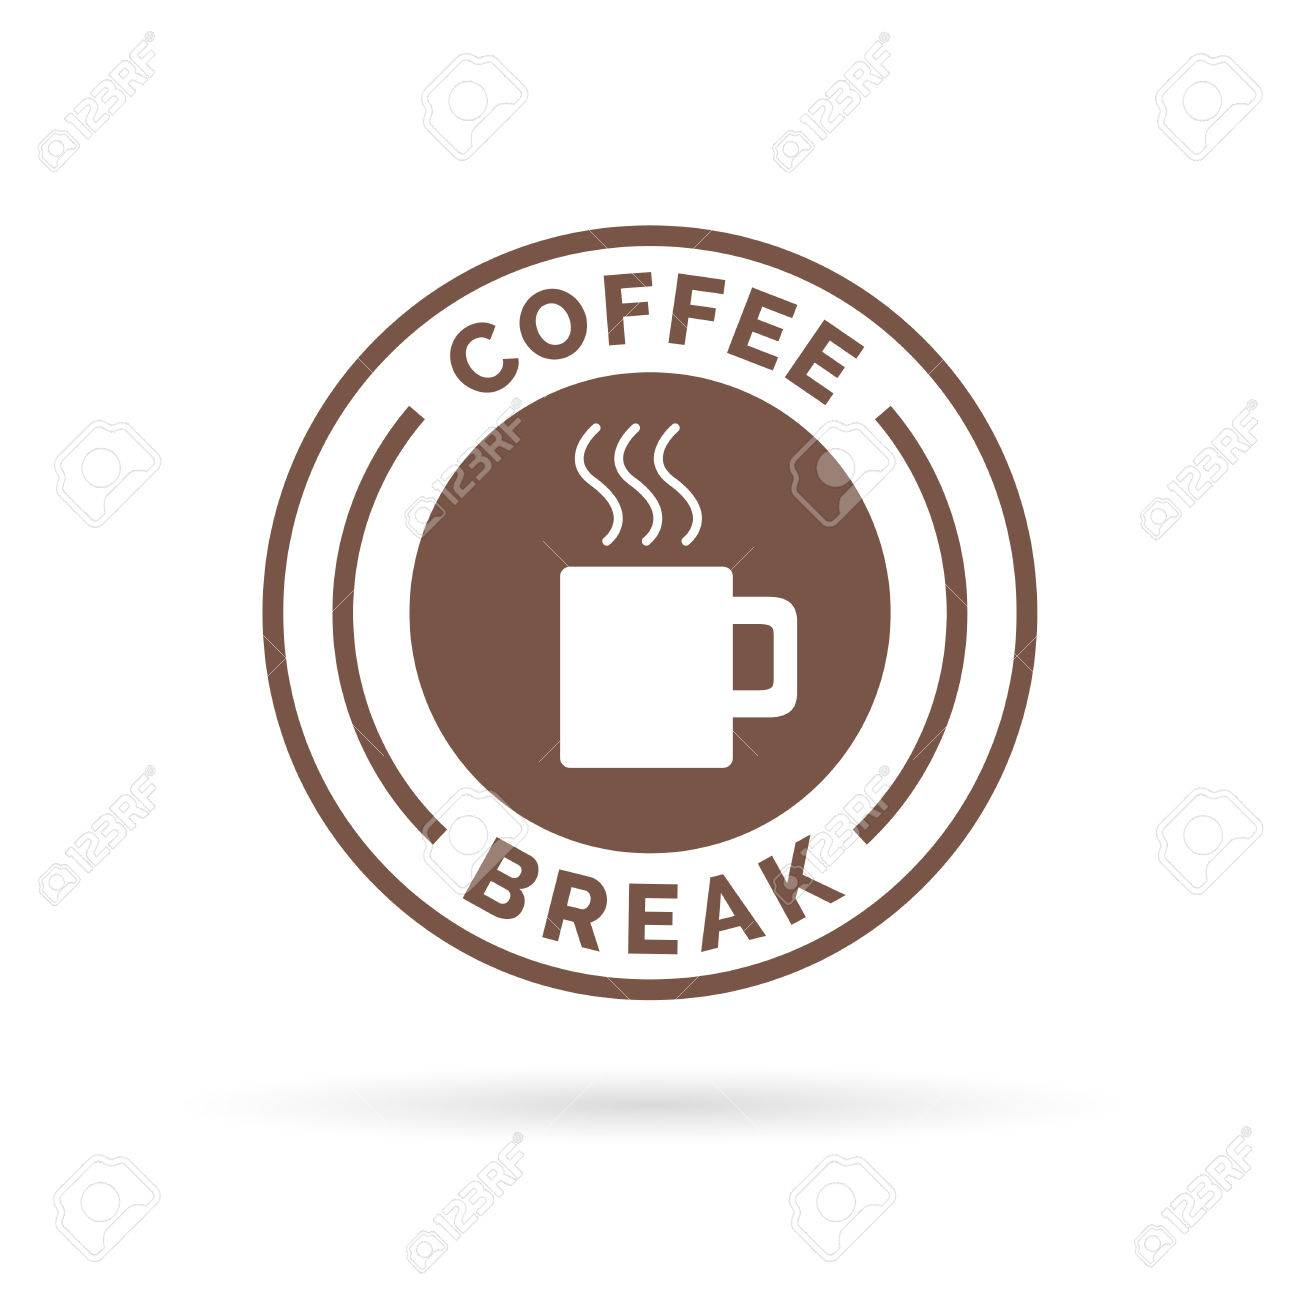 Coffee Break Time Badge Sign With Brown Steaming Mug Icon Silhouette Illustration Stock